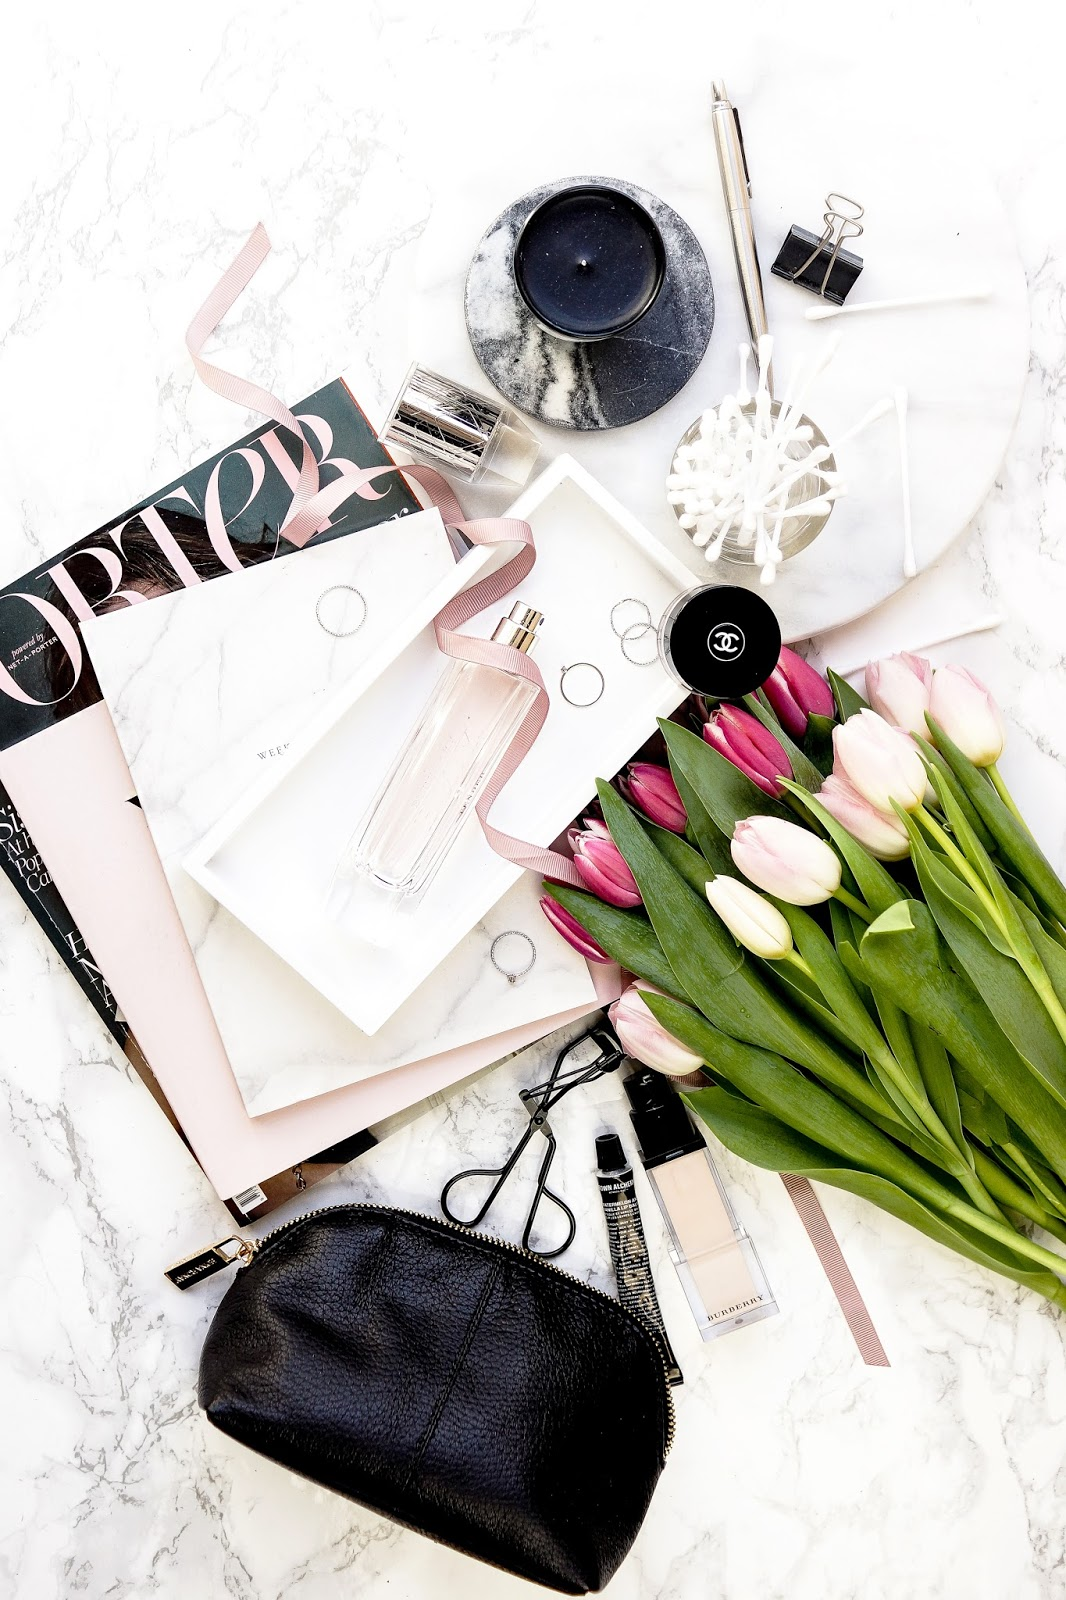 blog-props-photography-styling-tips-flatlay